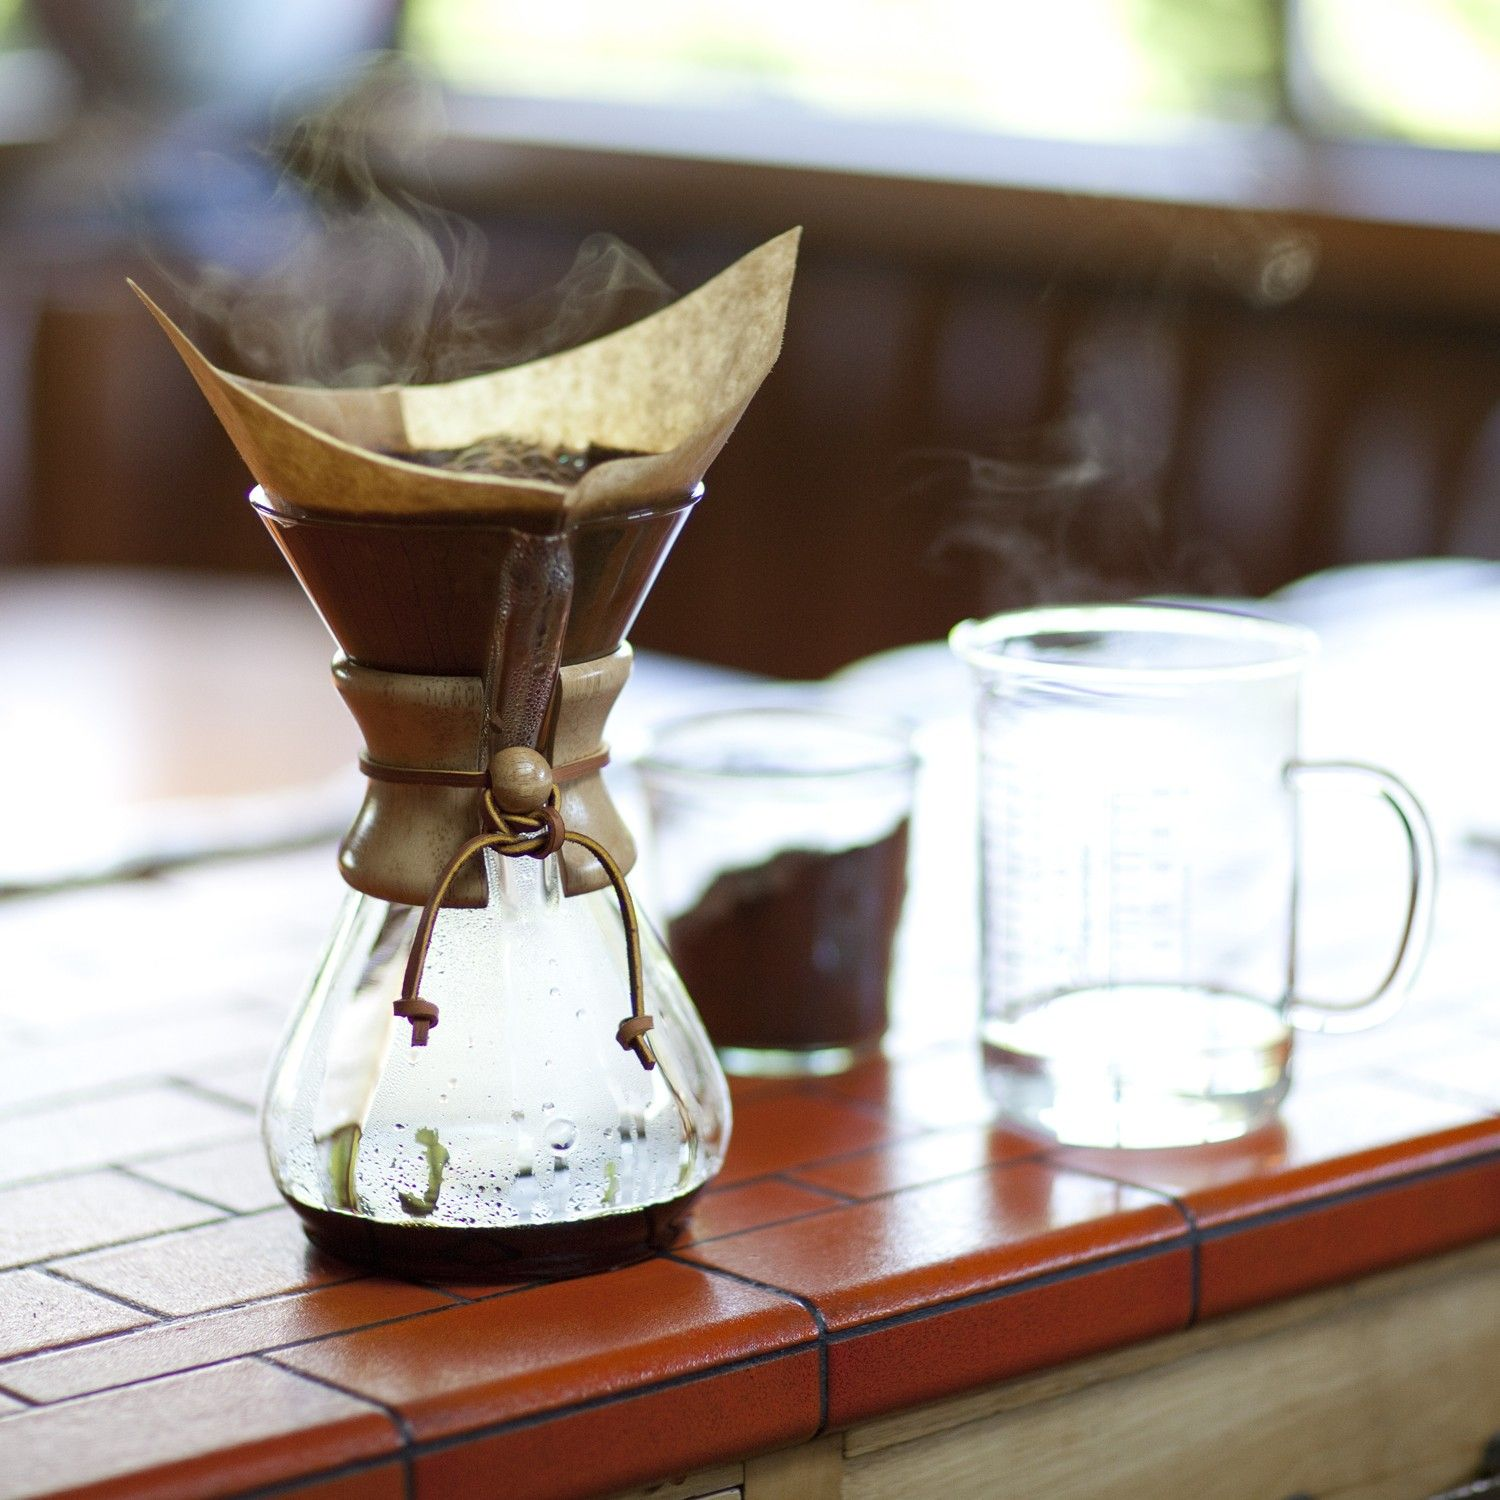 Chemex 1 cup coffeemaker 1 cup coffee maker one cup